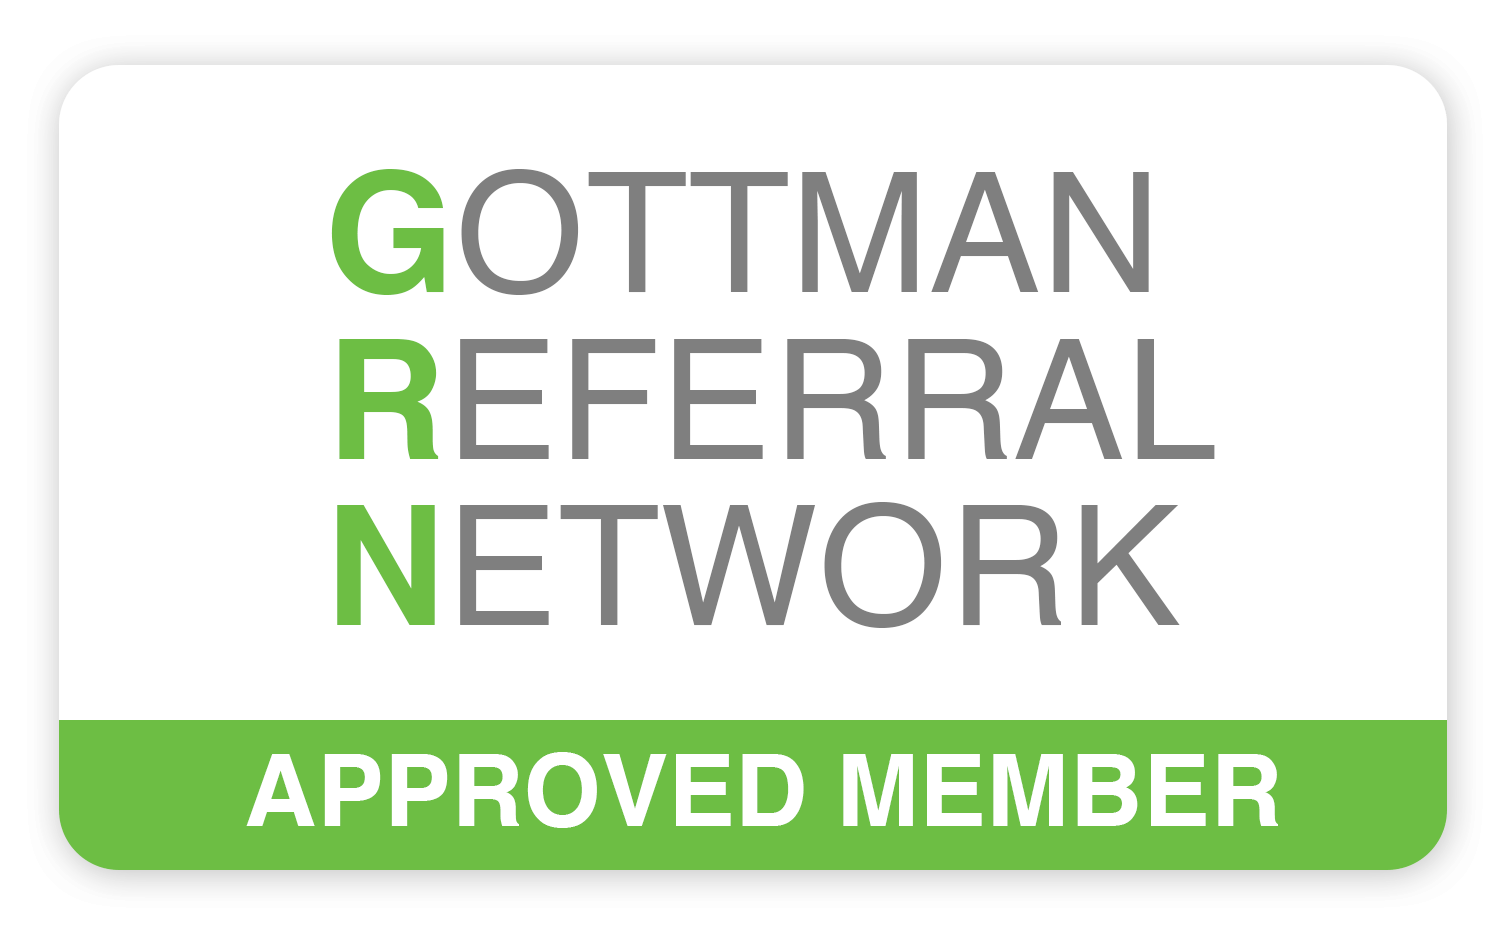 Jennifer  Kennett 's profile on the Gottman Referral Network